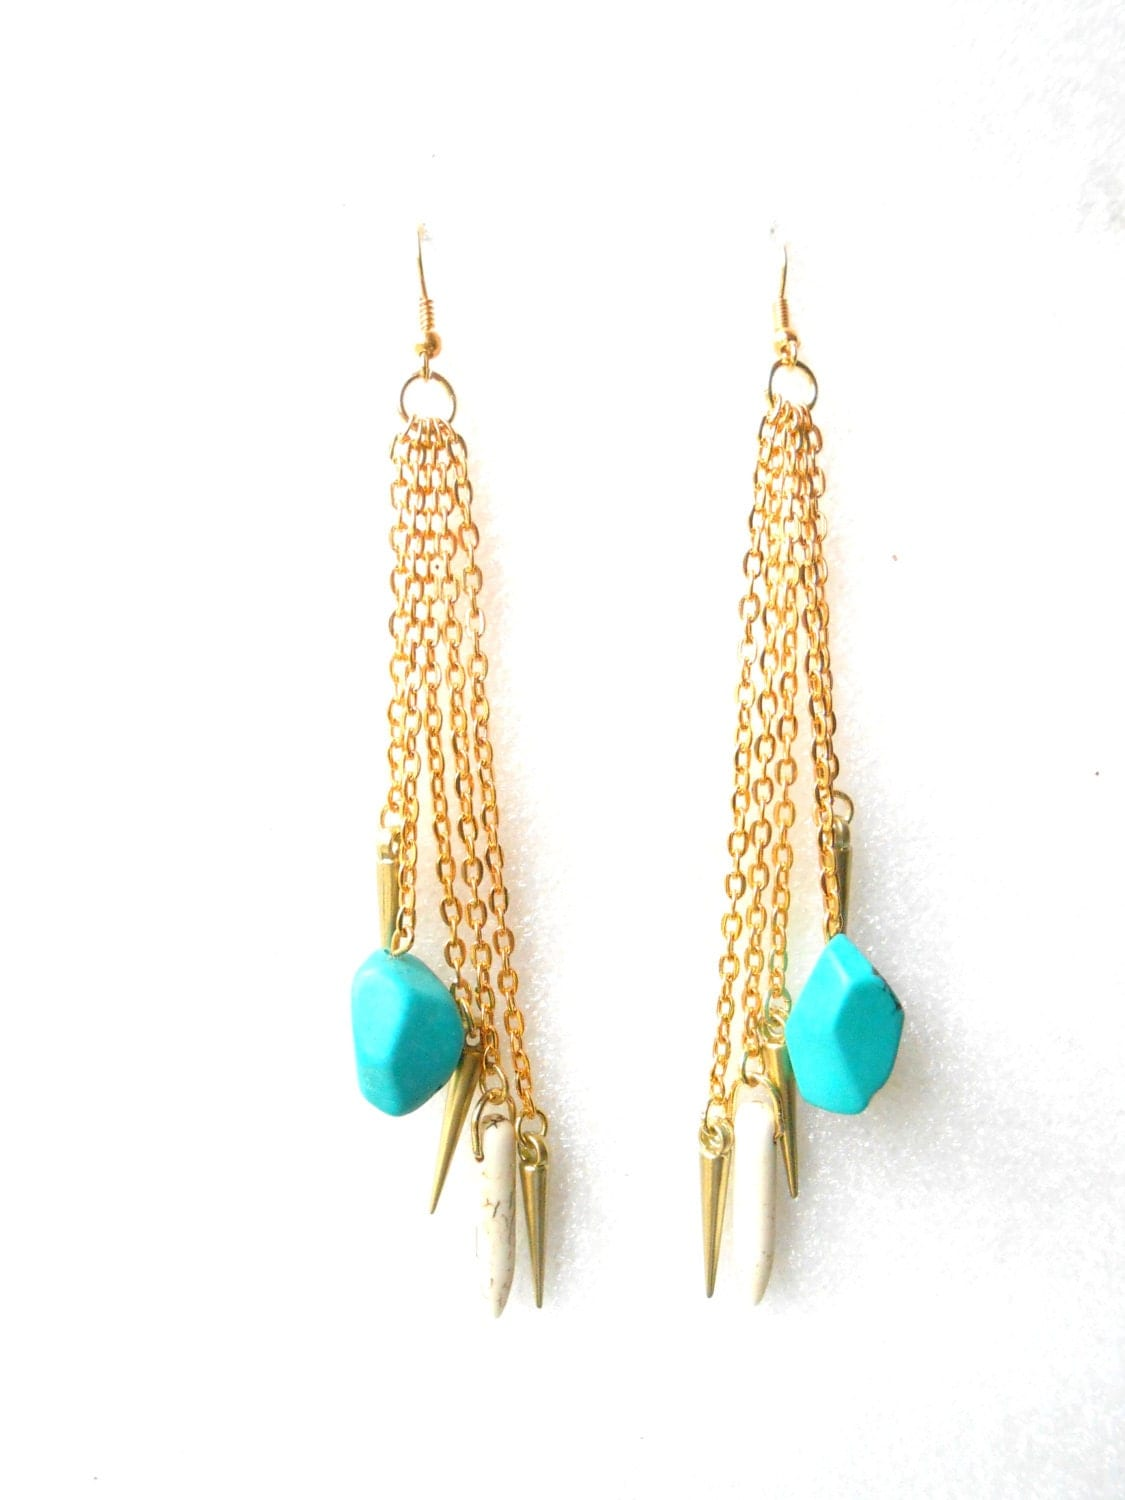 Boucles d'oreille multi chaines, spikes, et turquoise